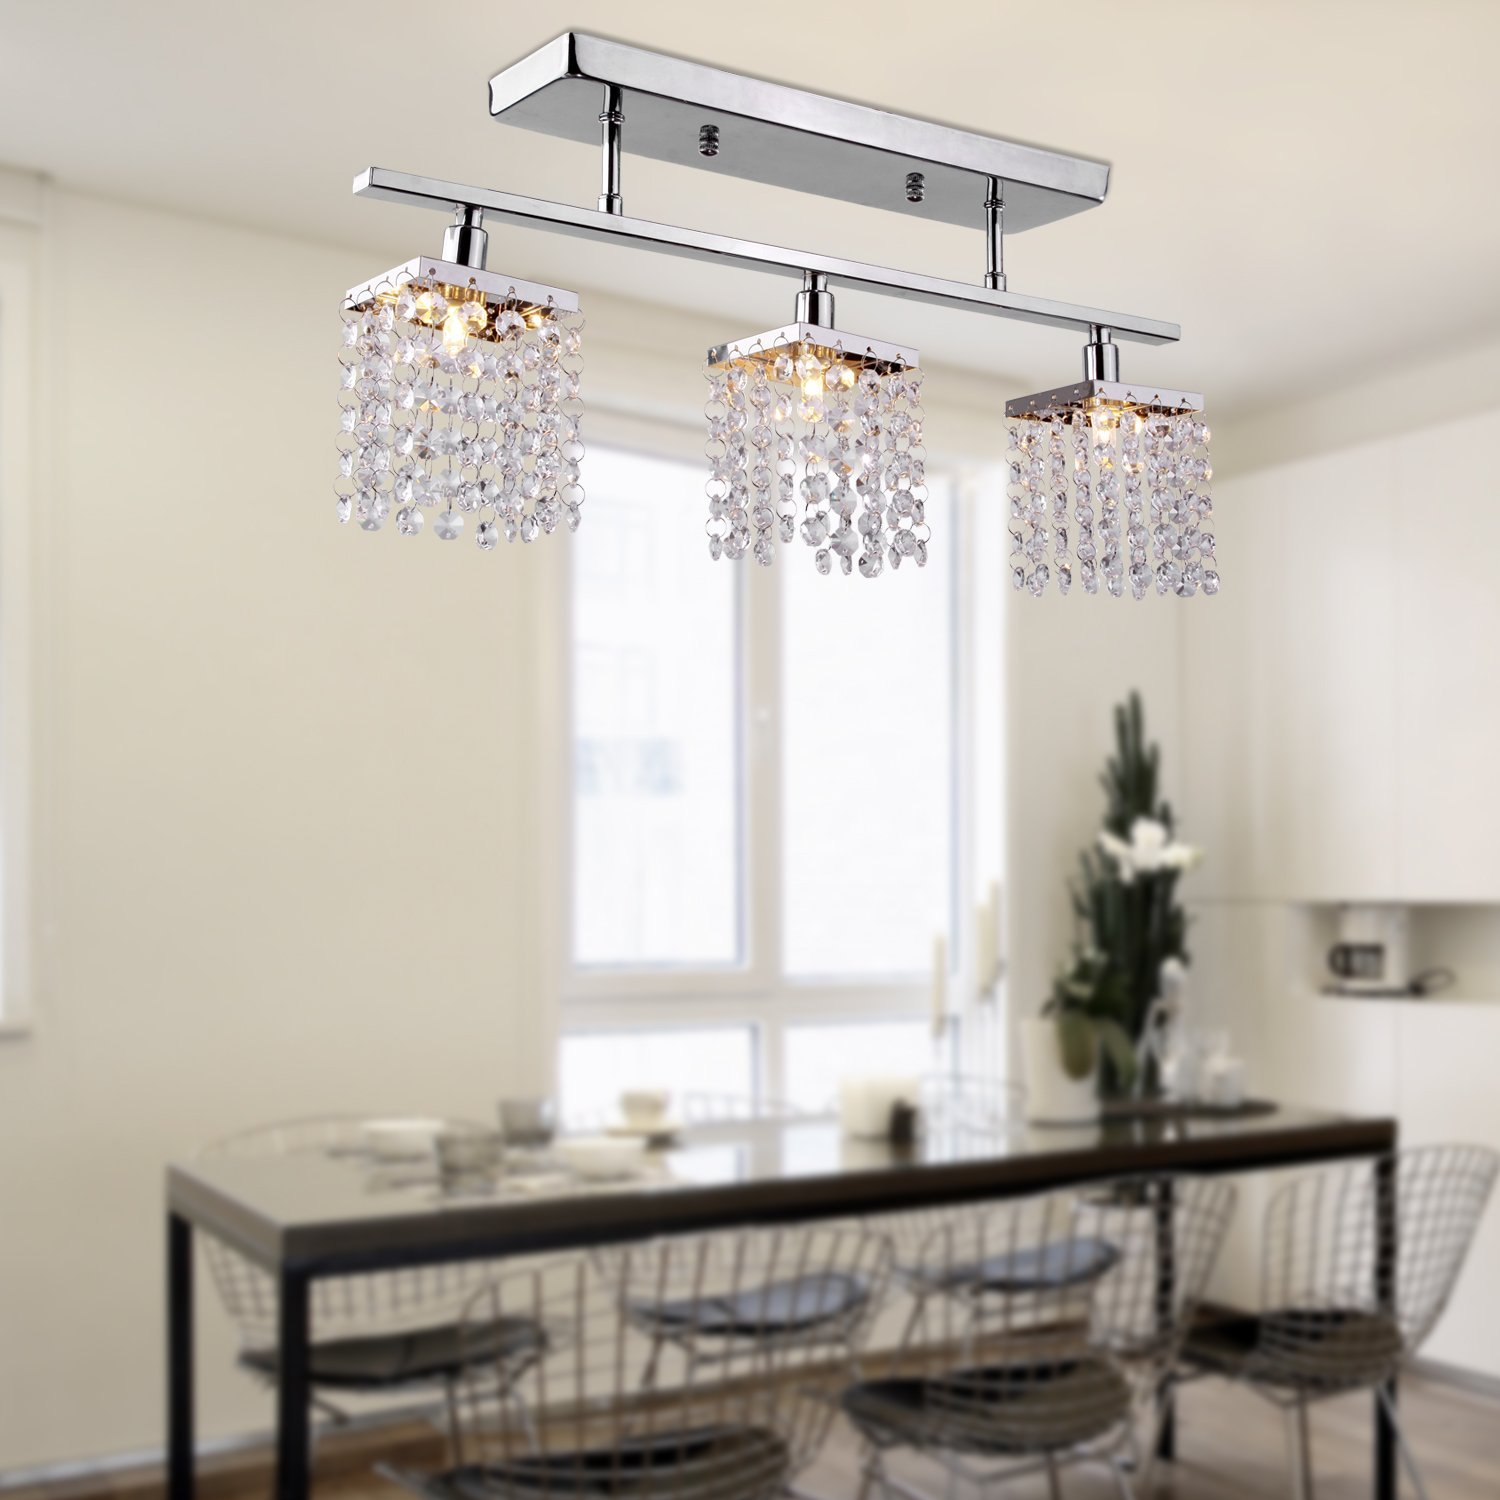 3 Light Hanging Crystal Linear Chandelier with Fixture  Modern Flush     3 Light Hanging Crystal Linear Chandelier with Fixture  Modern Flush Mount Ceiling  Light Fixture for Entry Dining Room  Bedroom in Pendant Lights from